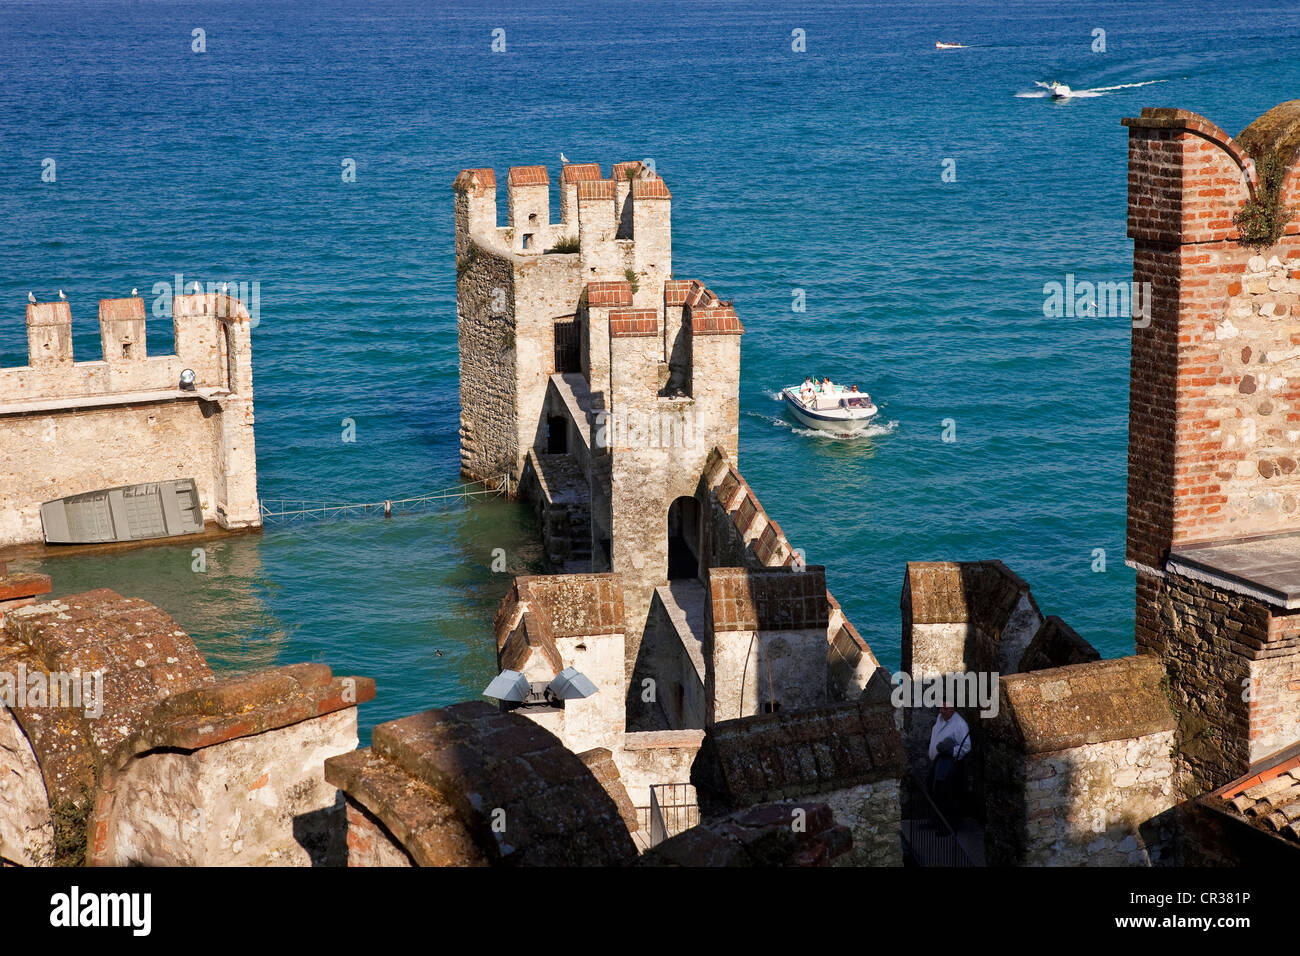 Italy, Lombardy, Lake Garda, Sirmione, the castle of Rocca Scaligieri - Stock Image